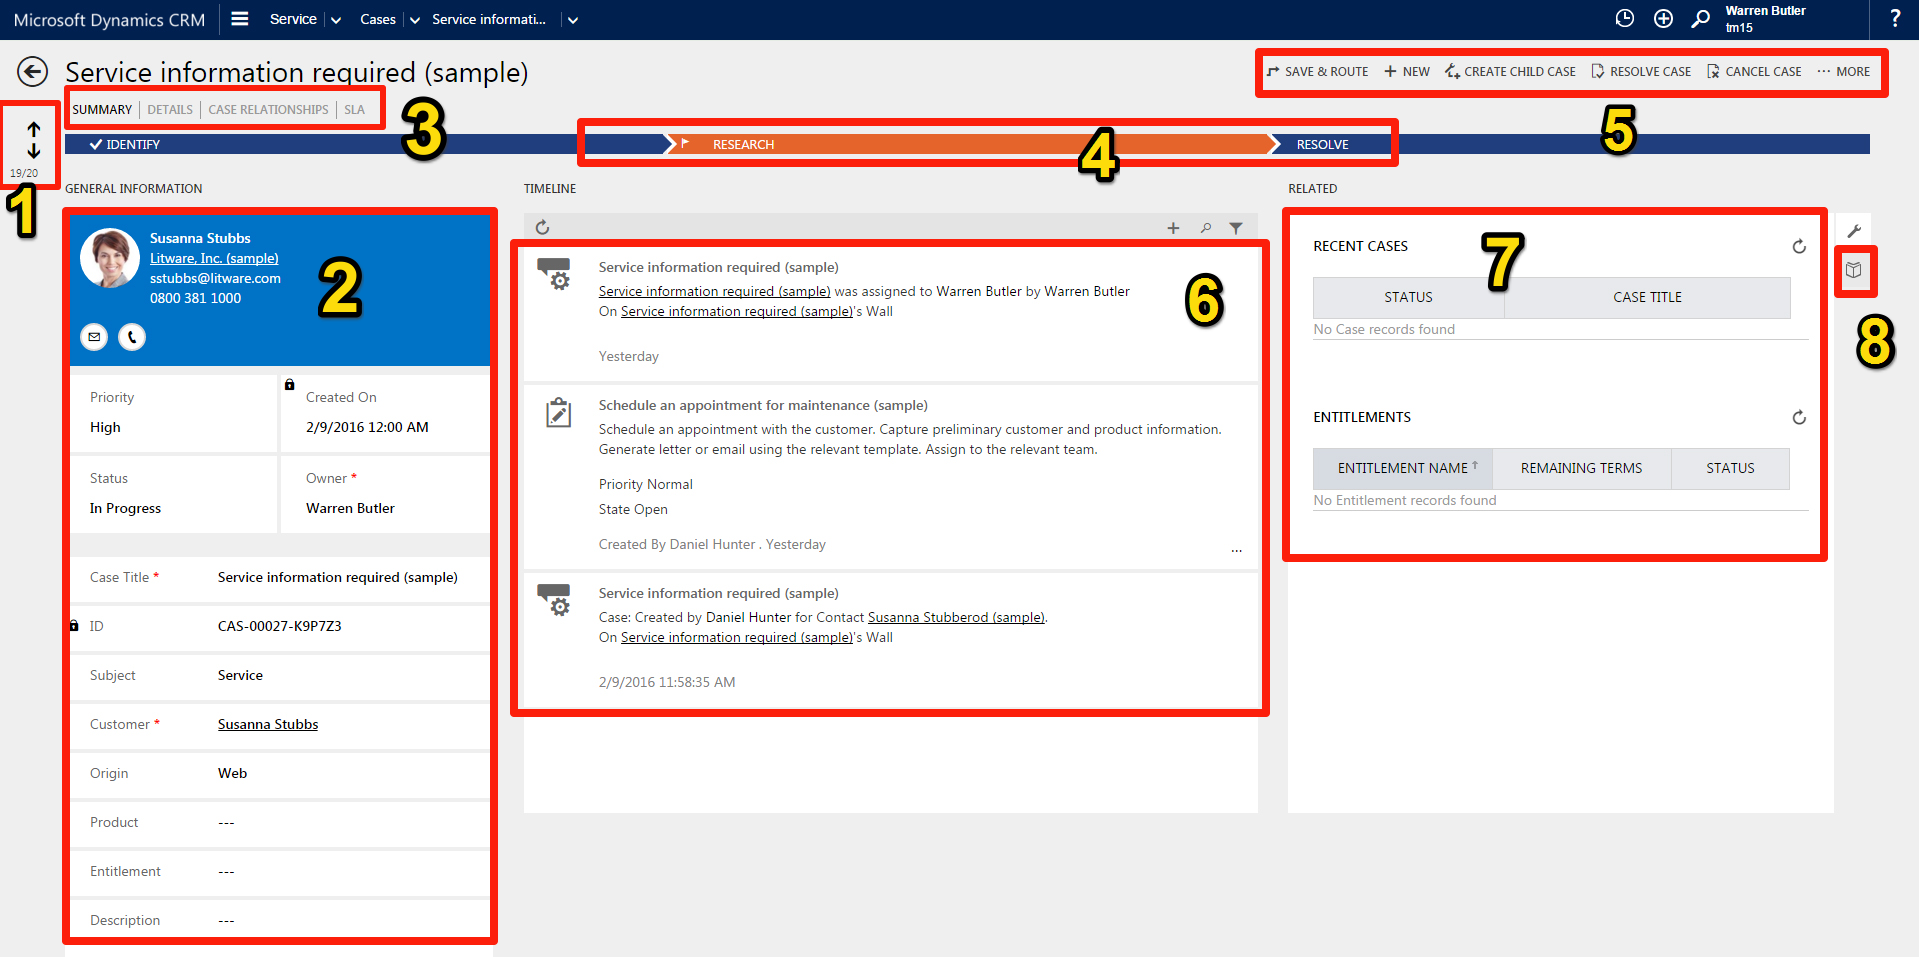 Managing Cases? Meet The Dynamics CRM Interactive Service Hub